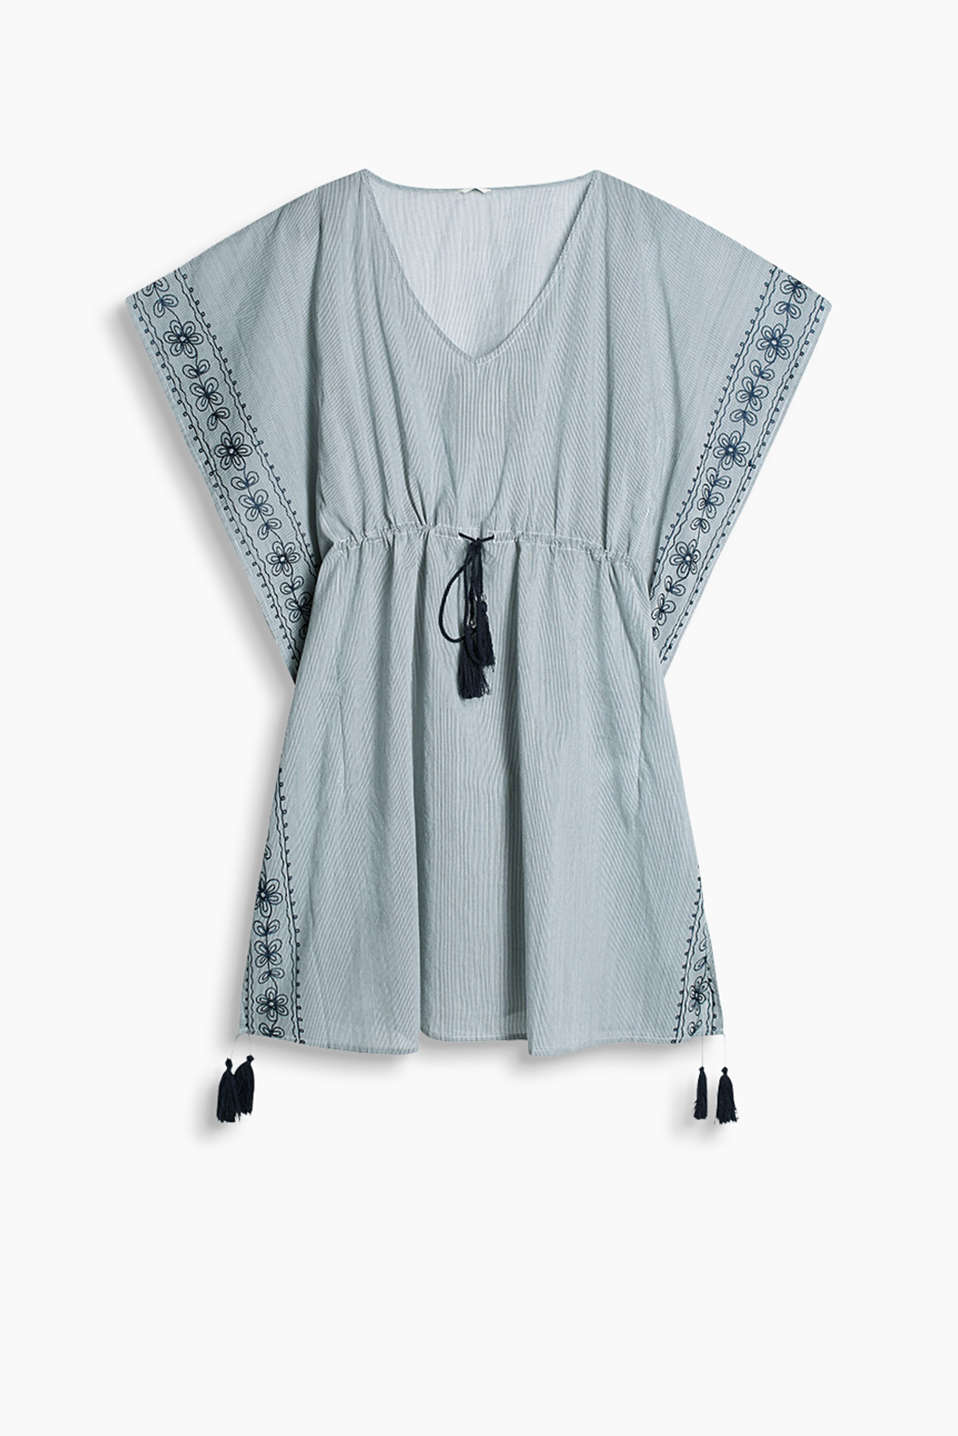 Collection: JUPITER BEACH - fine striped cotton tunic with floral embroidery